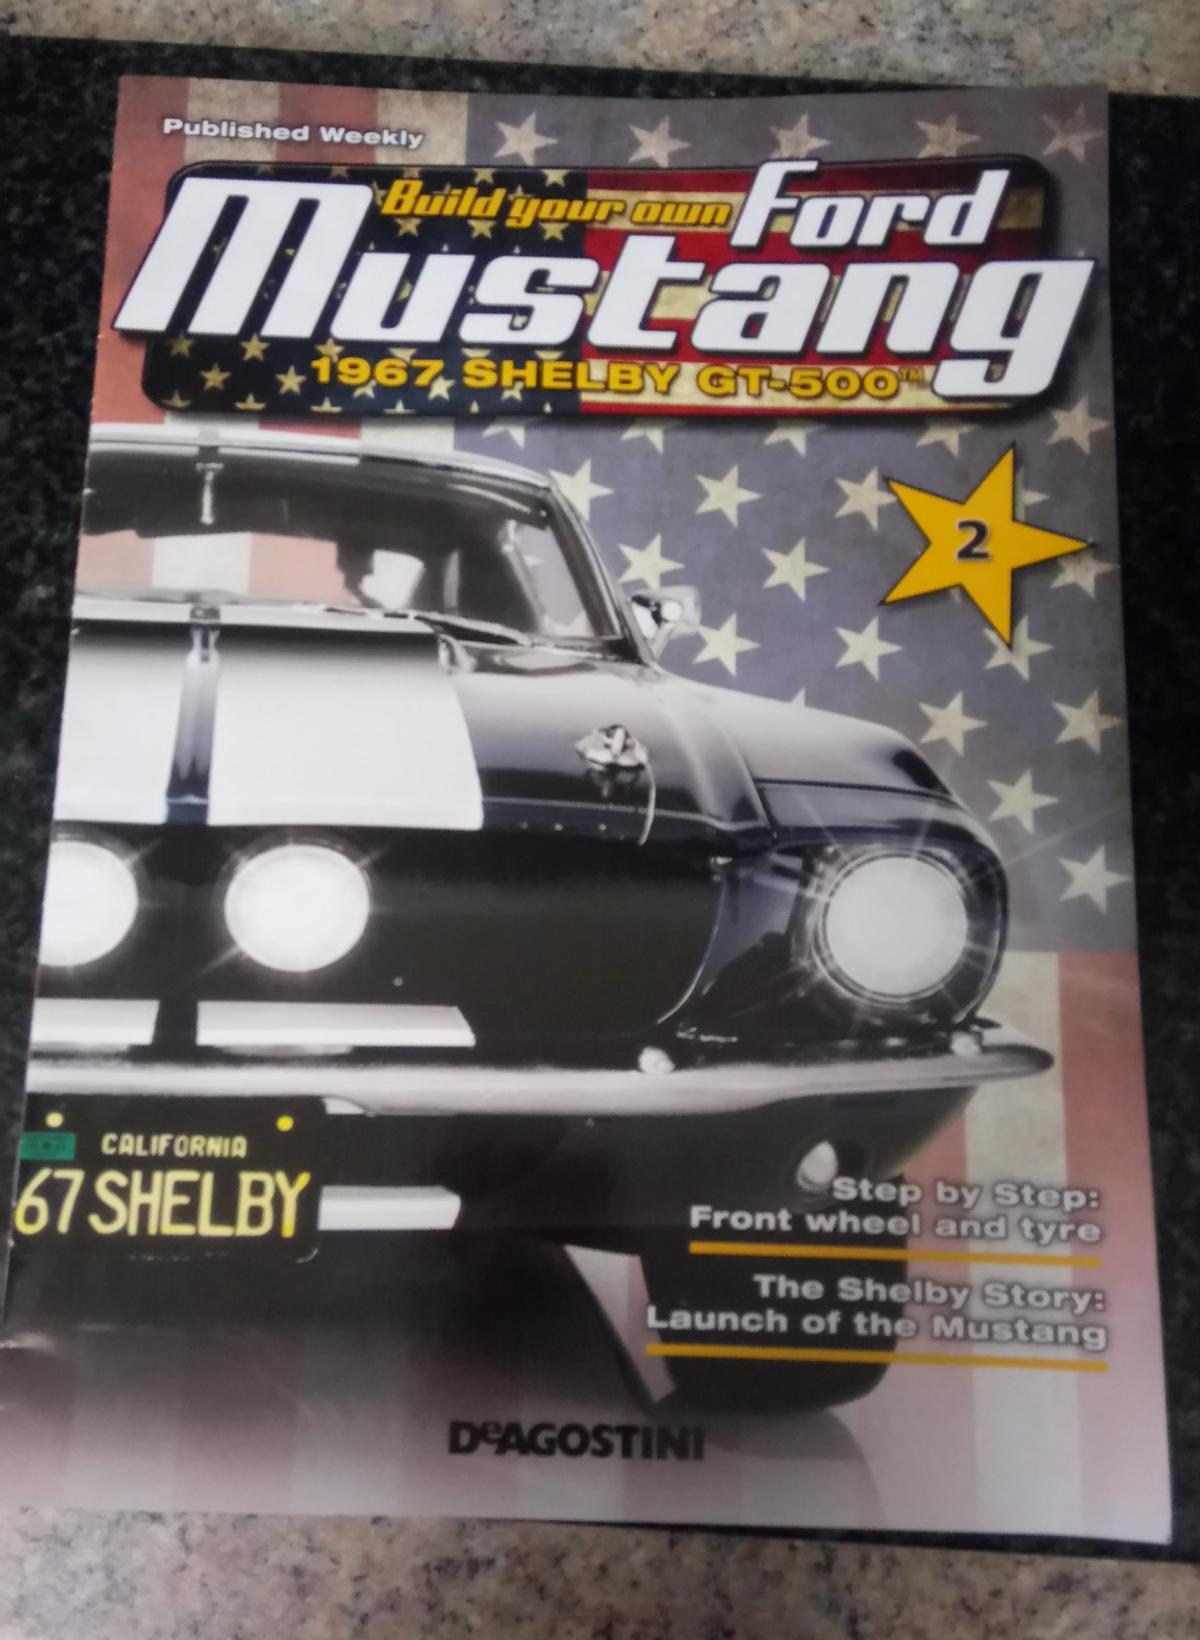 Build Your Own Mustang >> Build Your Own Ford Mustang 1967 Shelby Gt 5 In Np4 Pontypool For